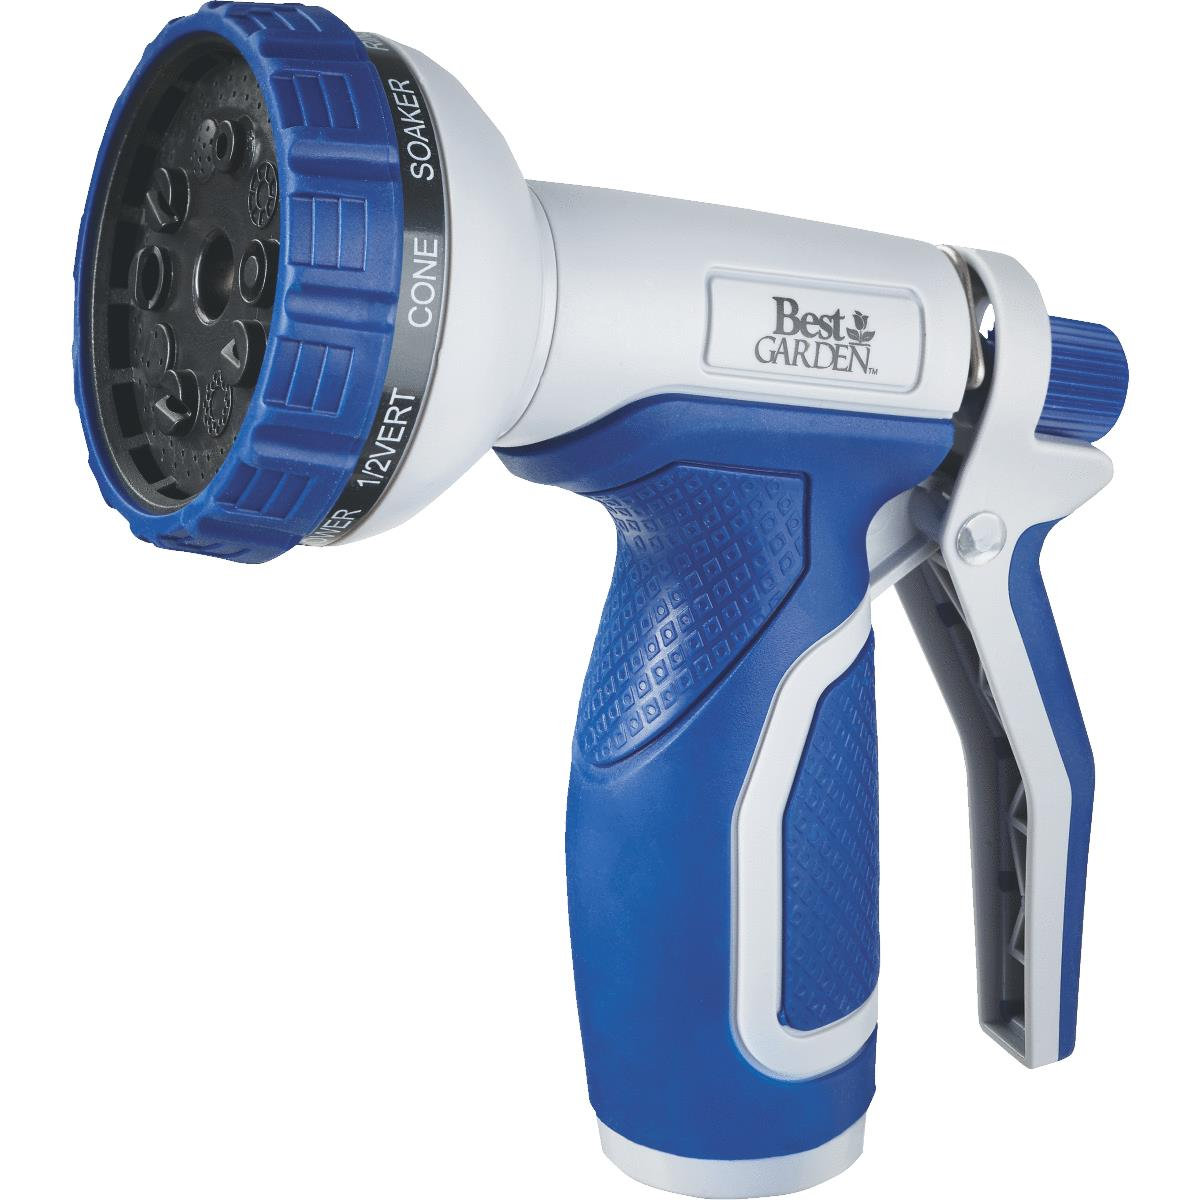 Best Garden Plastic 10-Pattern Nozzle, Blue & Gray